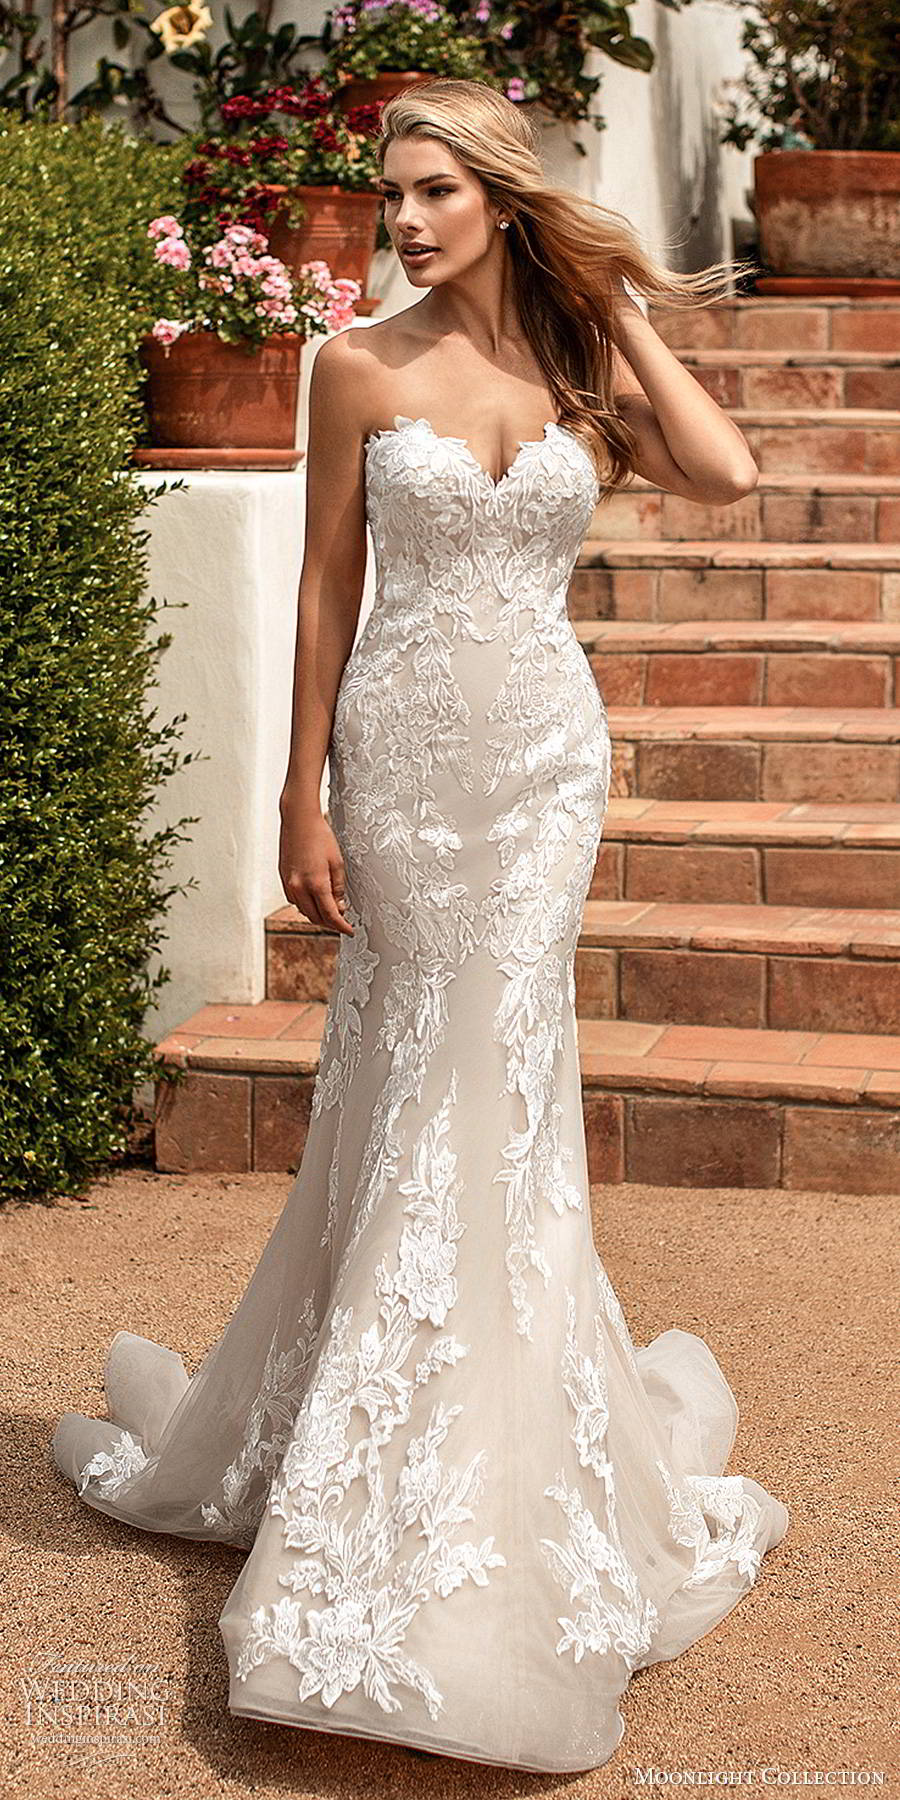 moonlight collection spring 2020 bridal strapless sweetheart fully embellished lace sheath elegant romantic wedding dress chapel train (12) mv